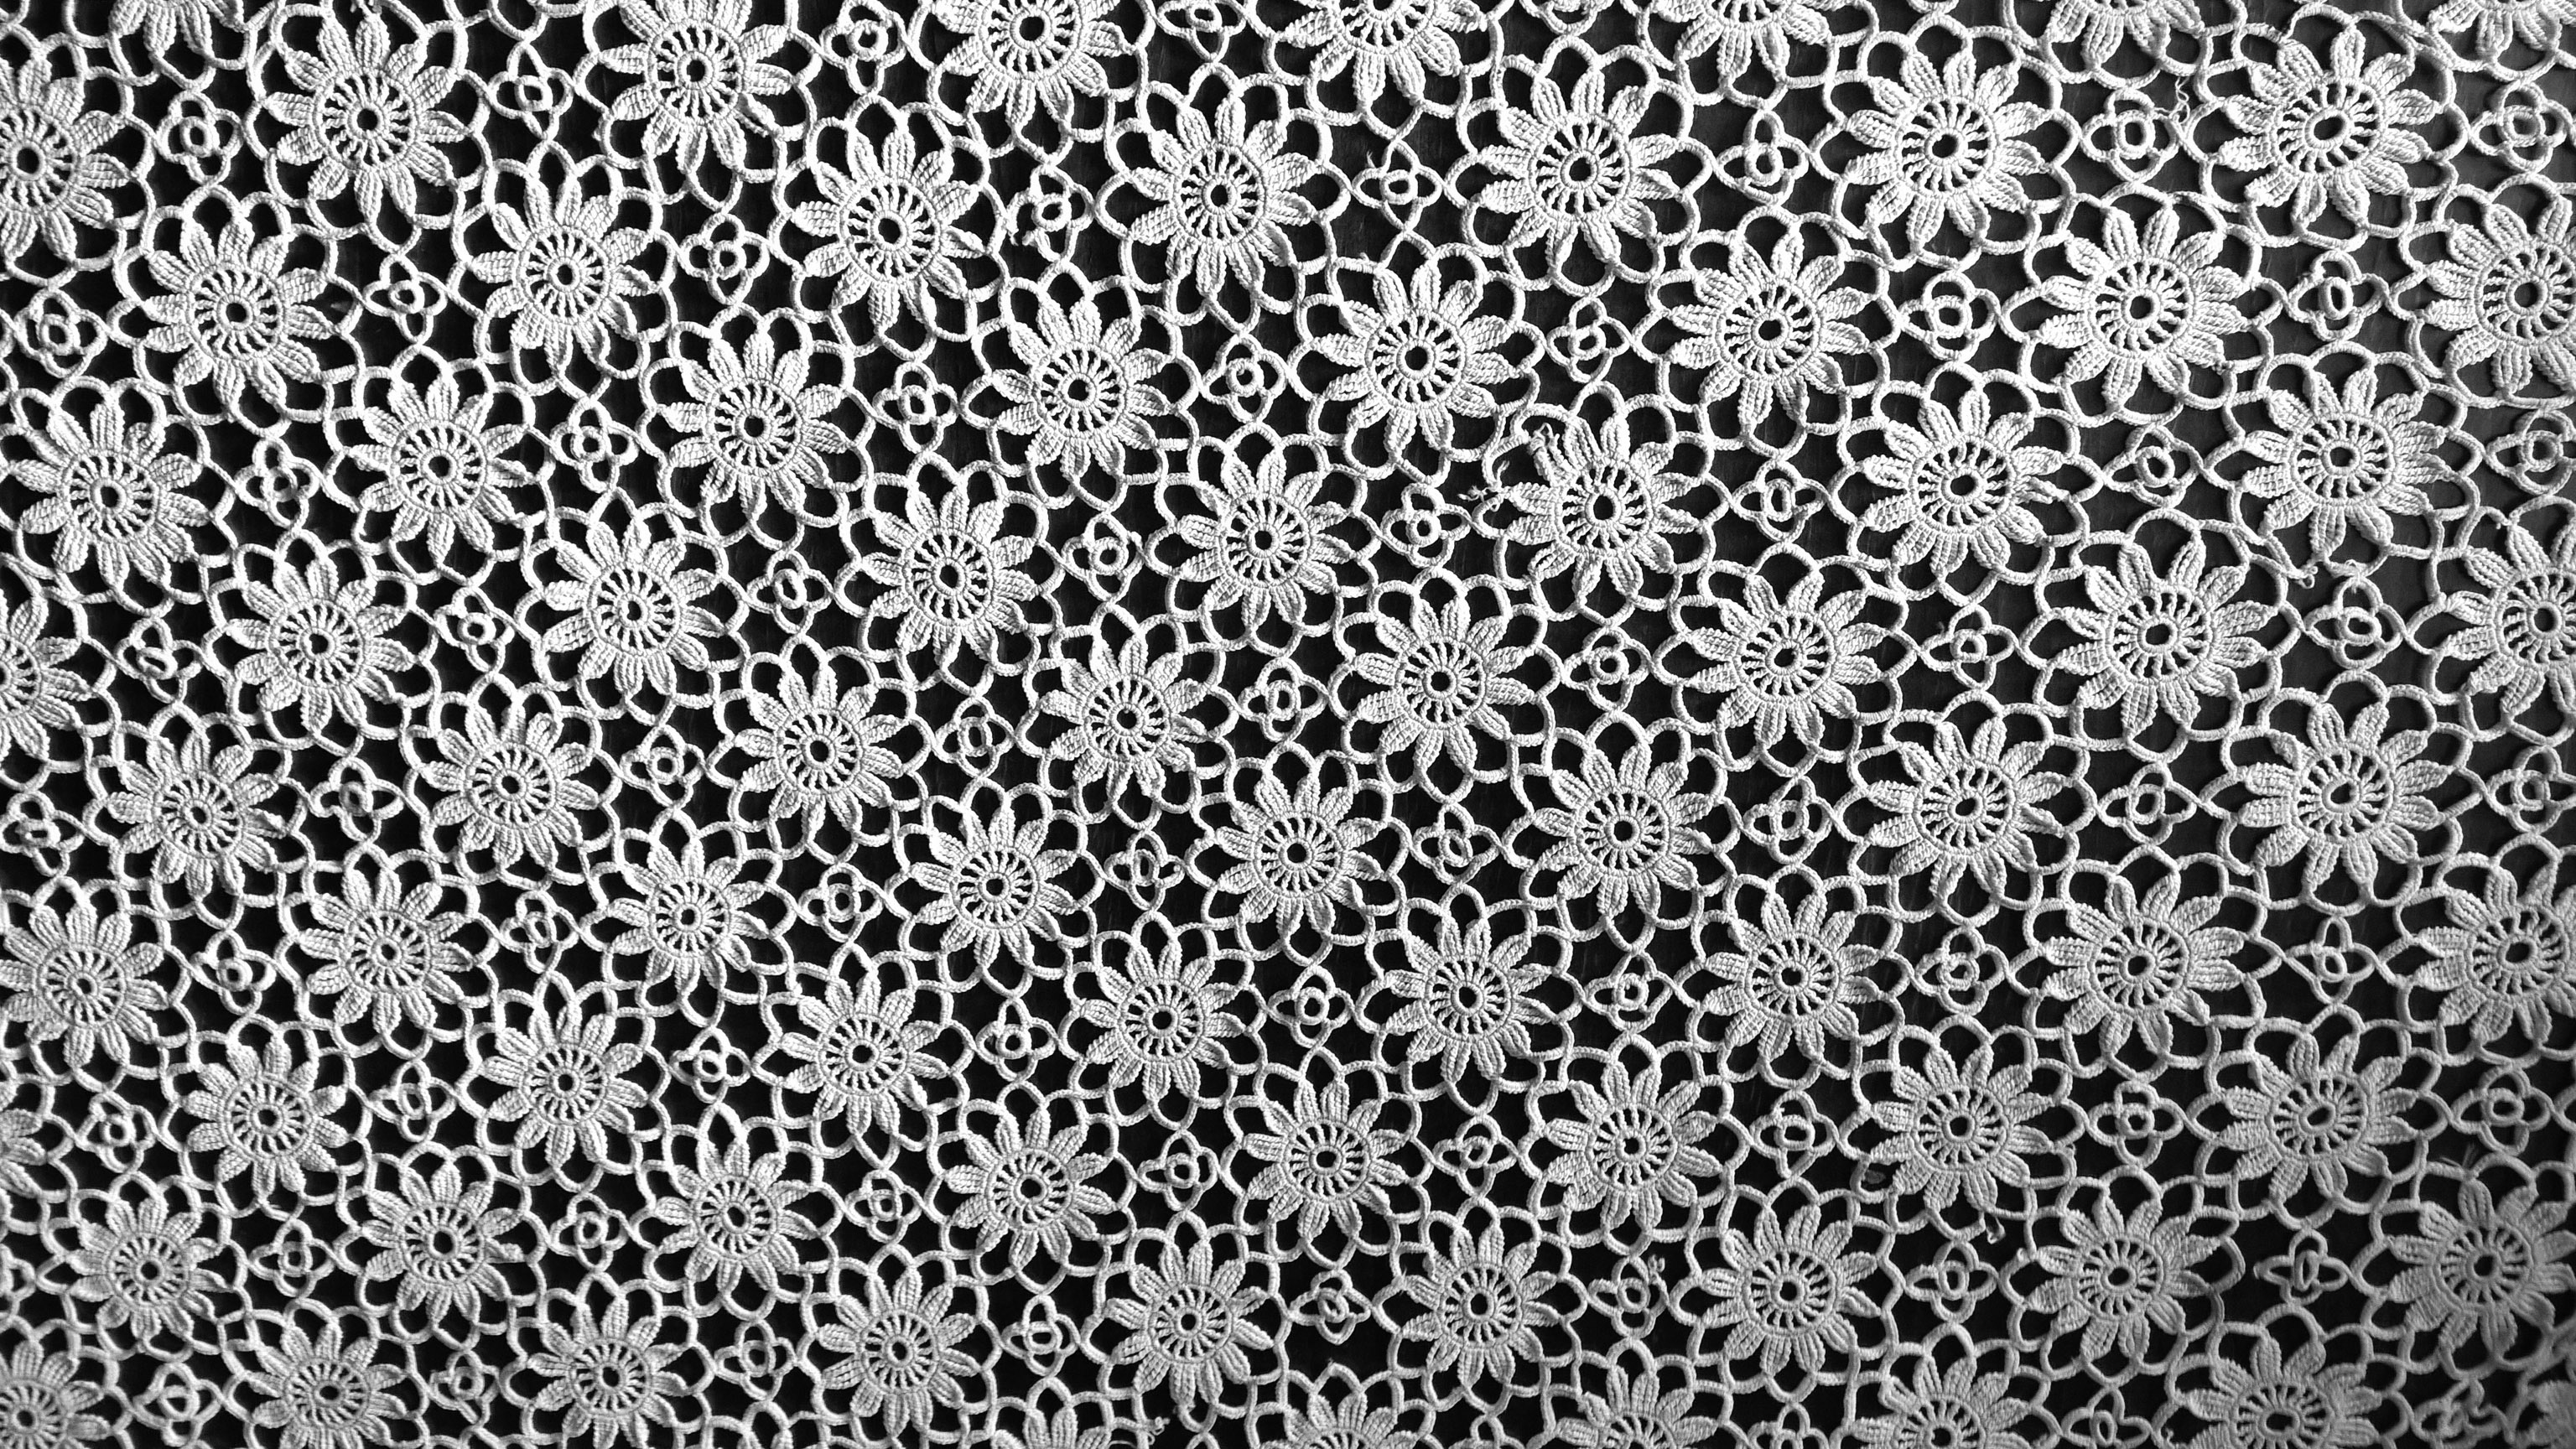 Best Iphone 4 Wallpapers Hd Free Stock Photo Of Blackandwhite Flower Lace